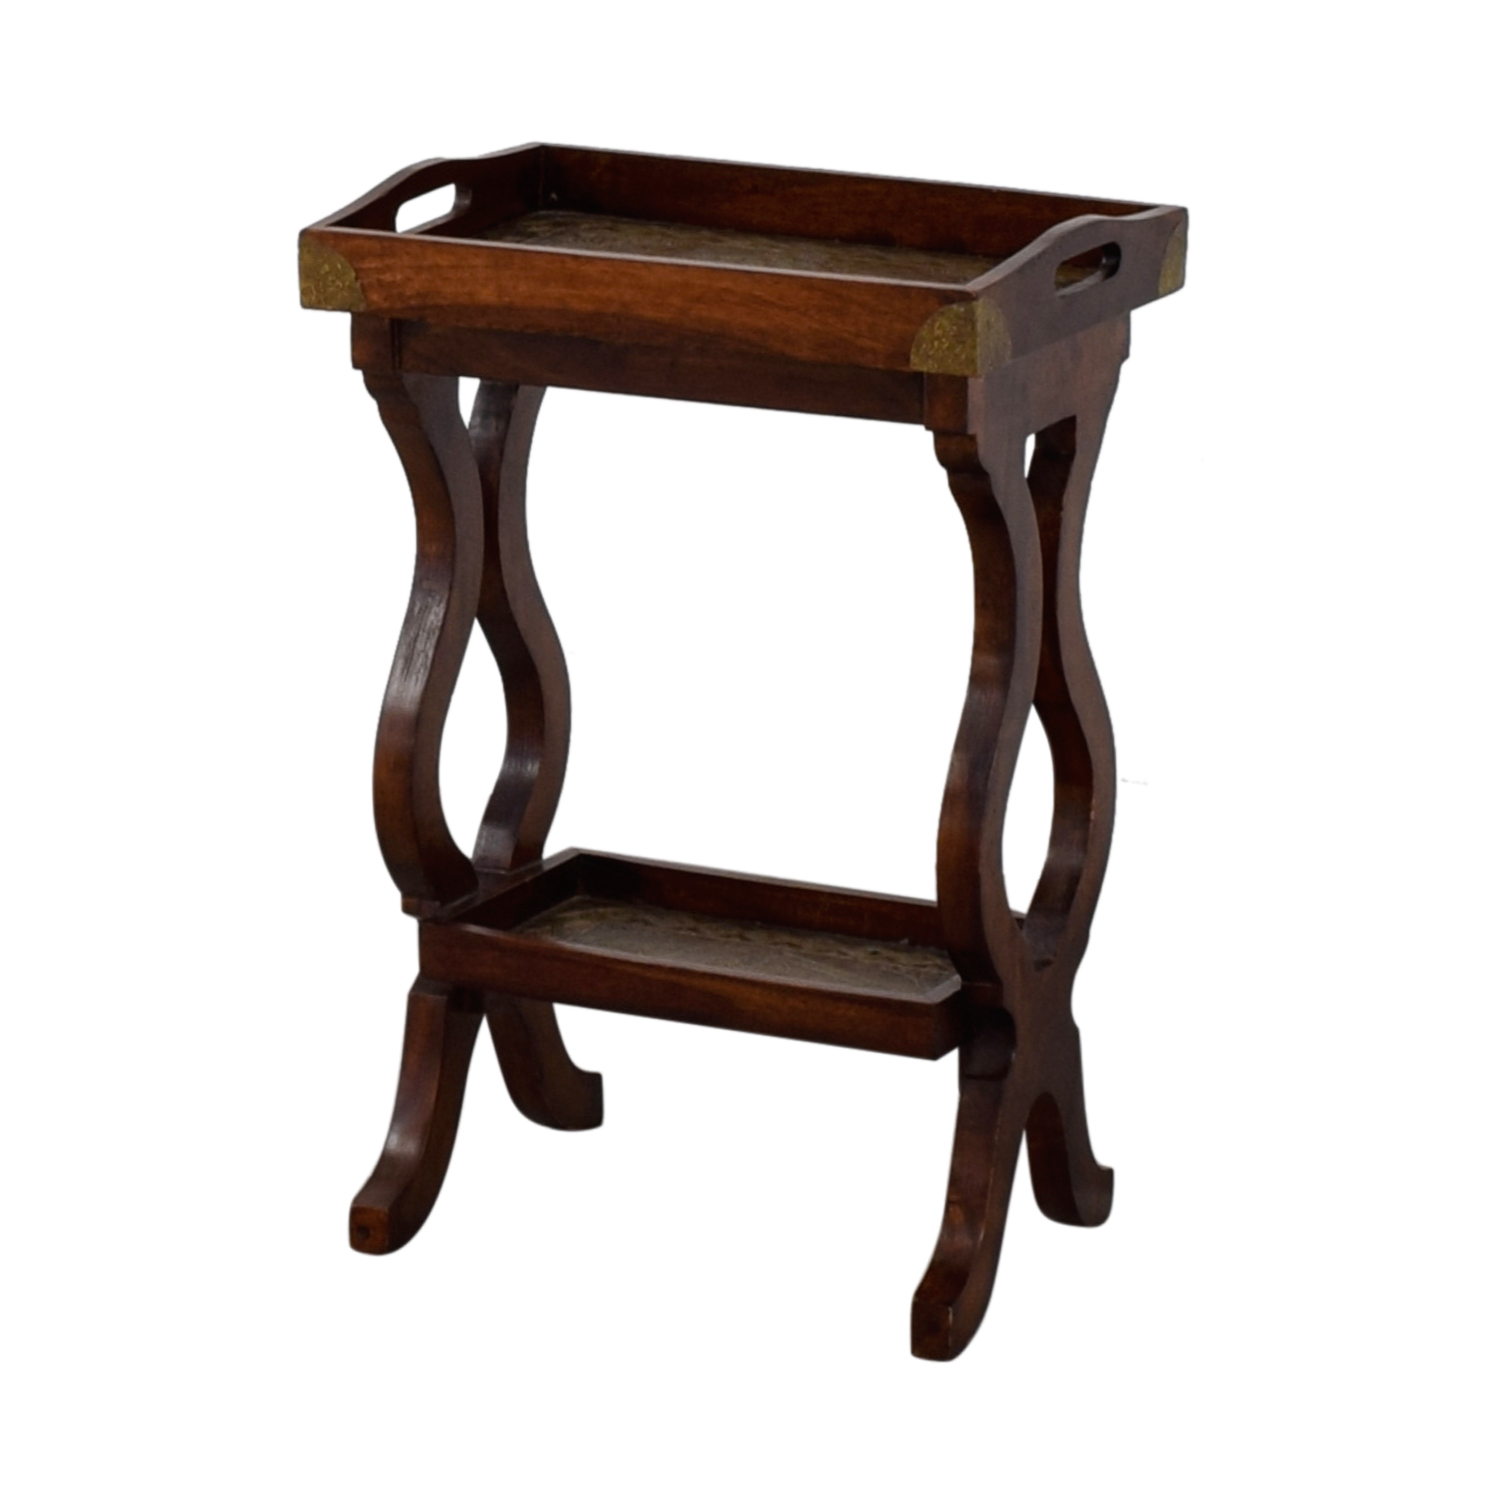 Pottery Barn Wood Table: Pottery Barn Pottery Barn Wood Side Table / Tables